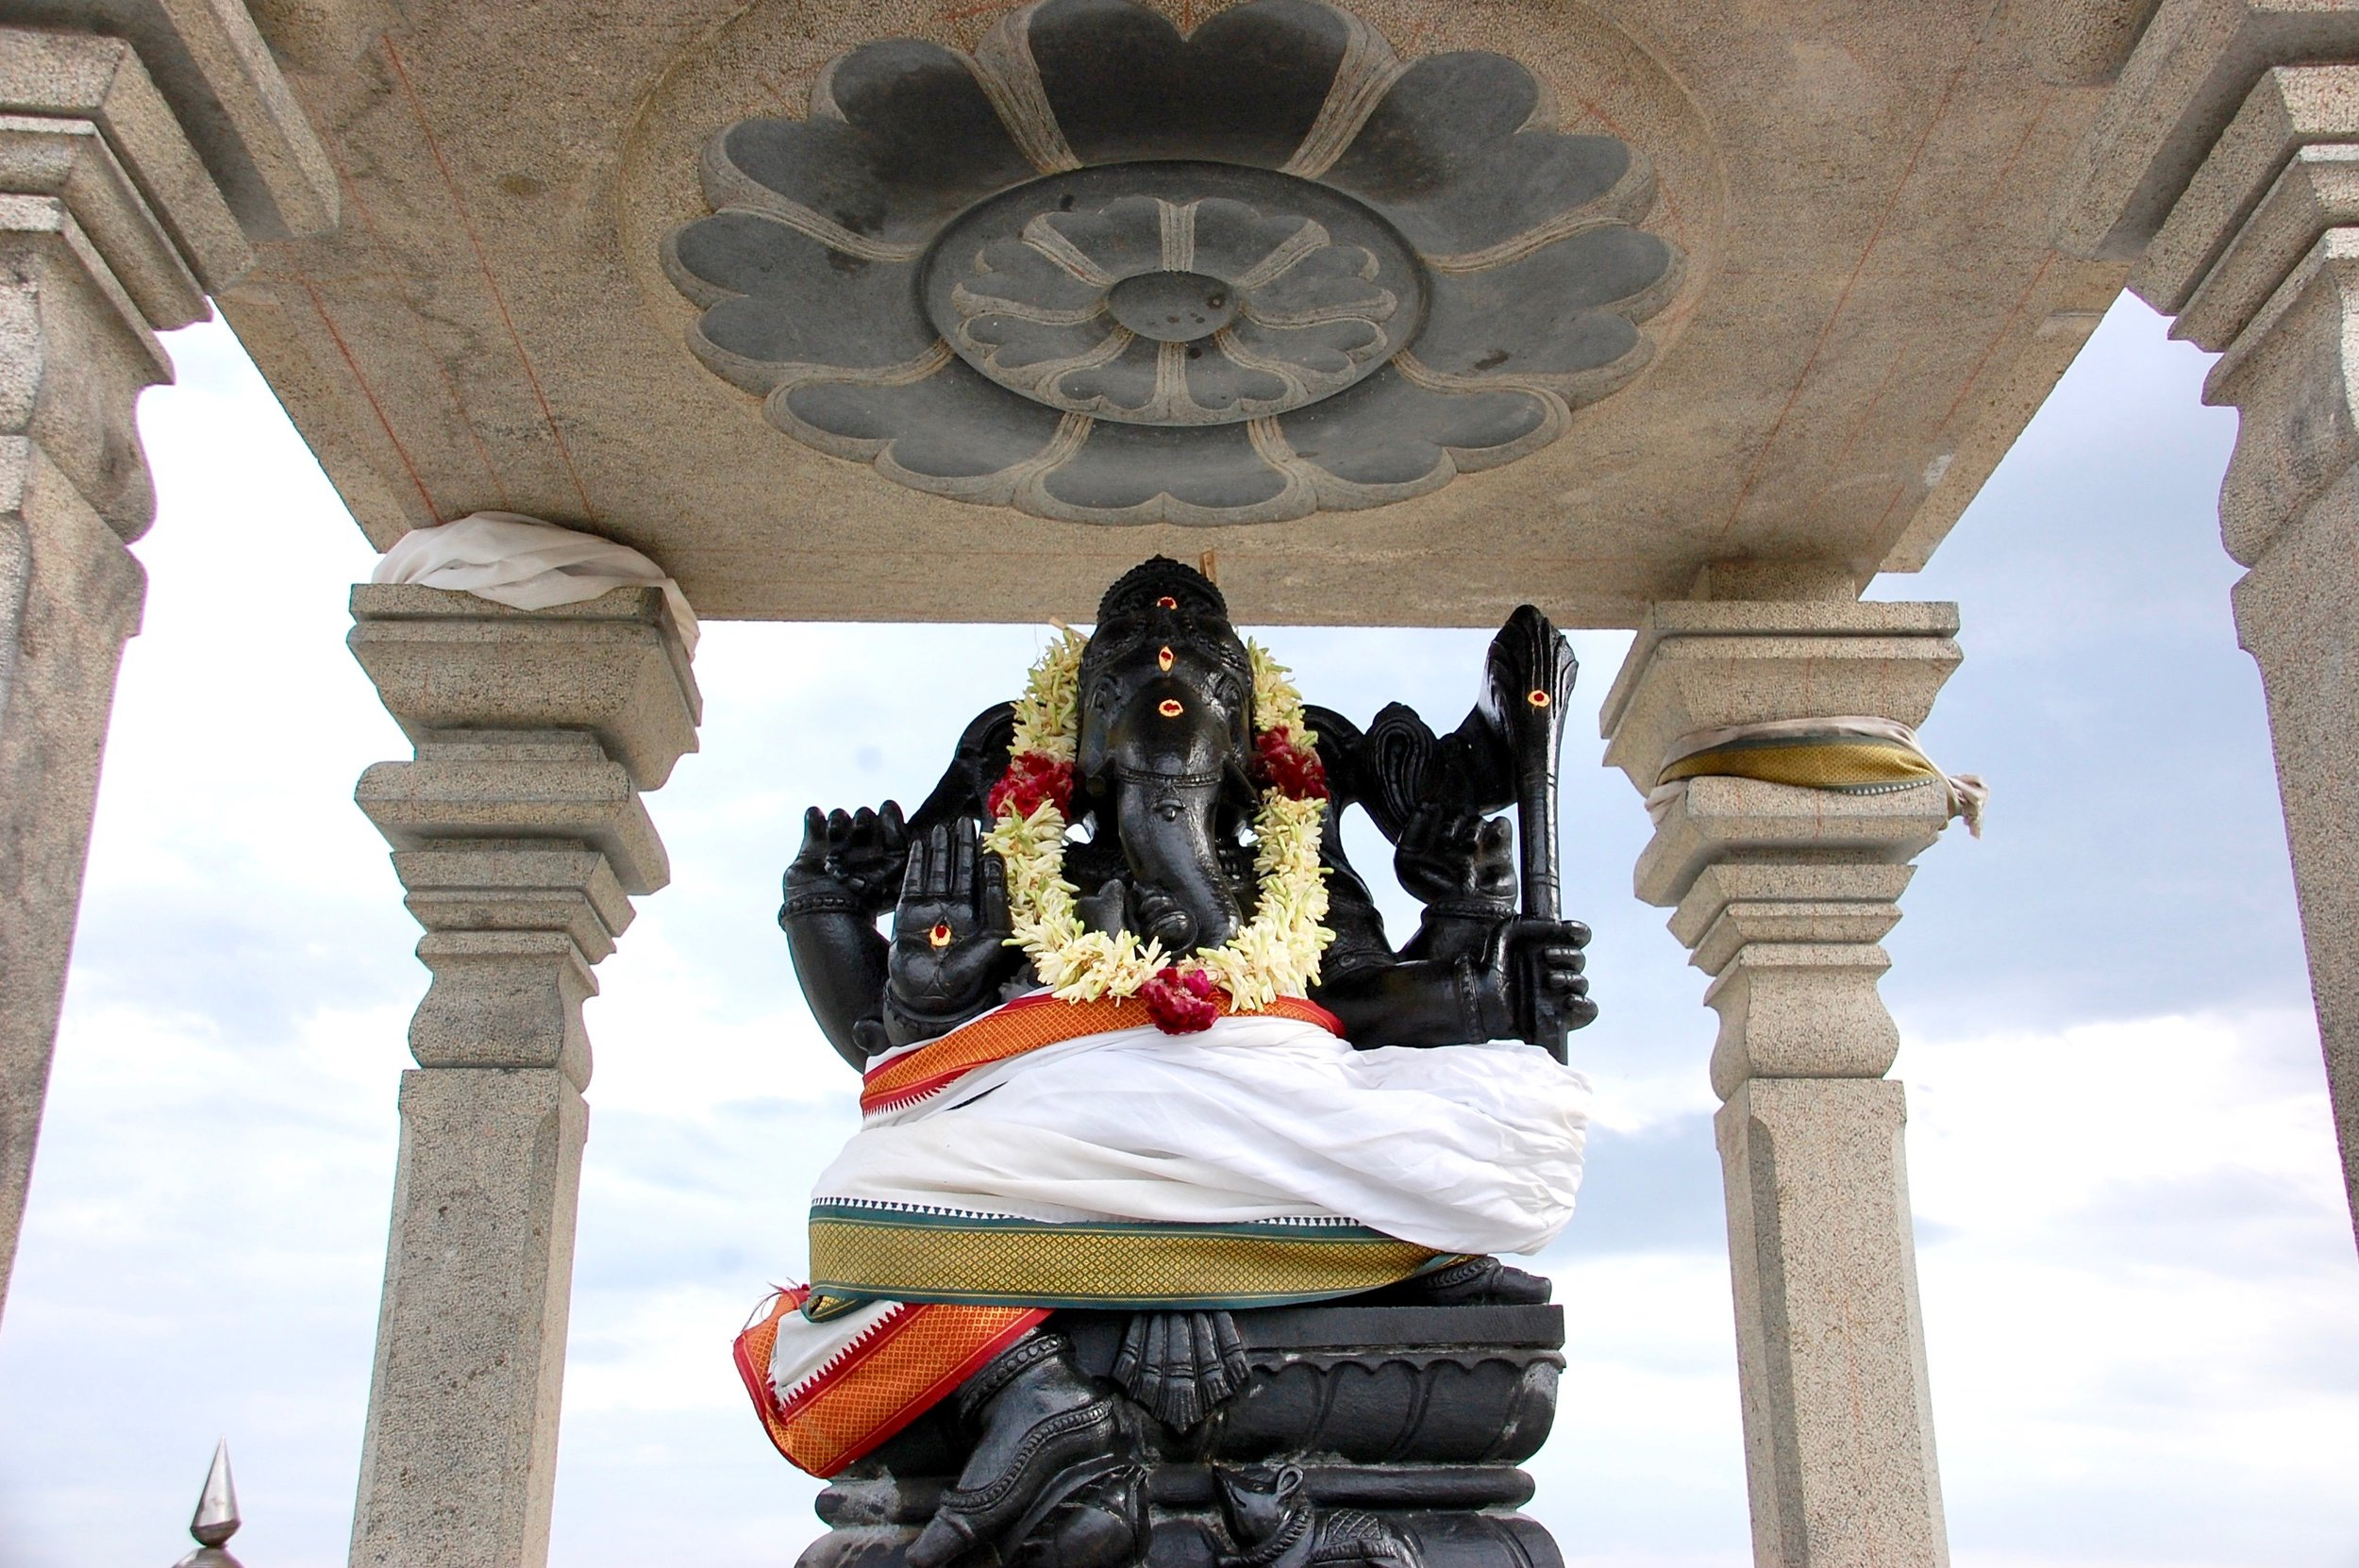 Ganesha, placed here at the highest point of the temple against a backdrop of sky, symbolizes the complete awakening of kundalini from Muladhara to Svadishthana (Olilayam, Tamil Nadu)